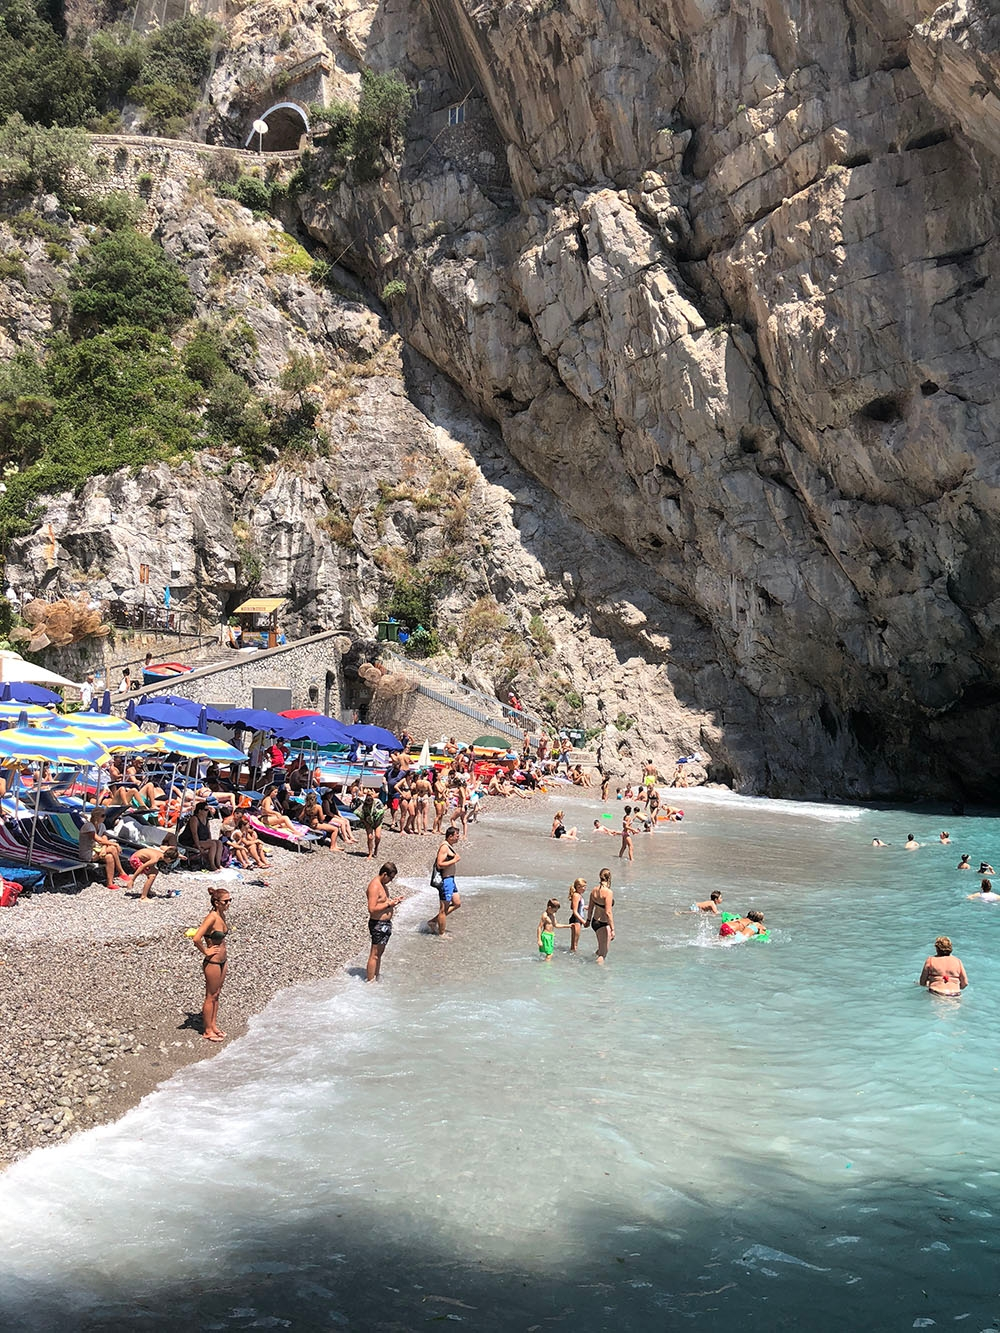 Praiano Beach is full of people, umbrellas, sun loungers and turquoise water